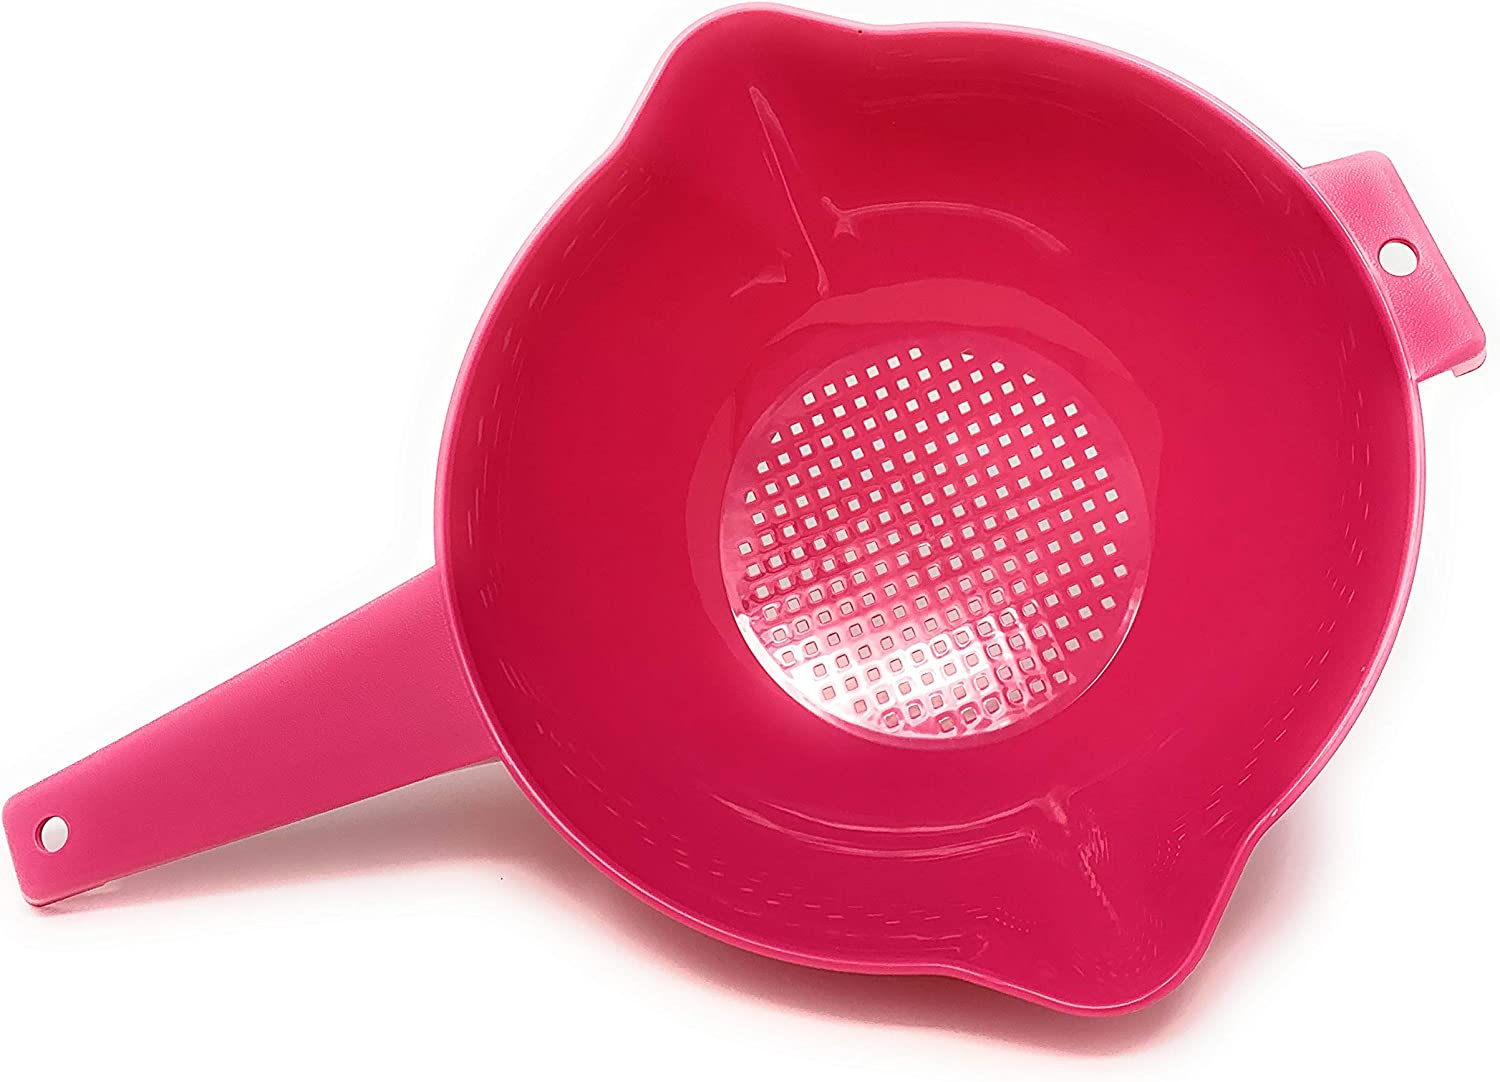 Tupperware 2 Quart Colander Strainer with Handle, Pink